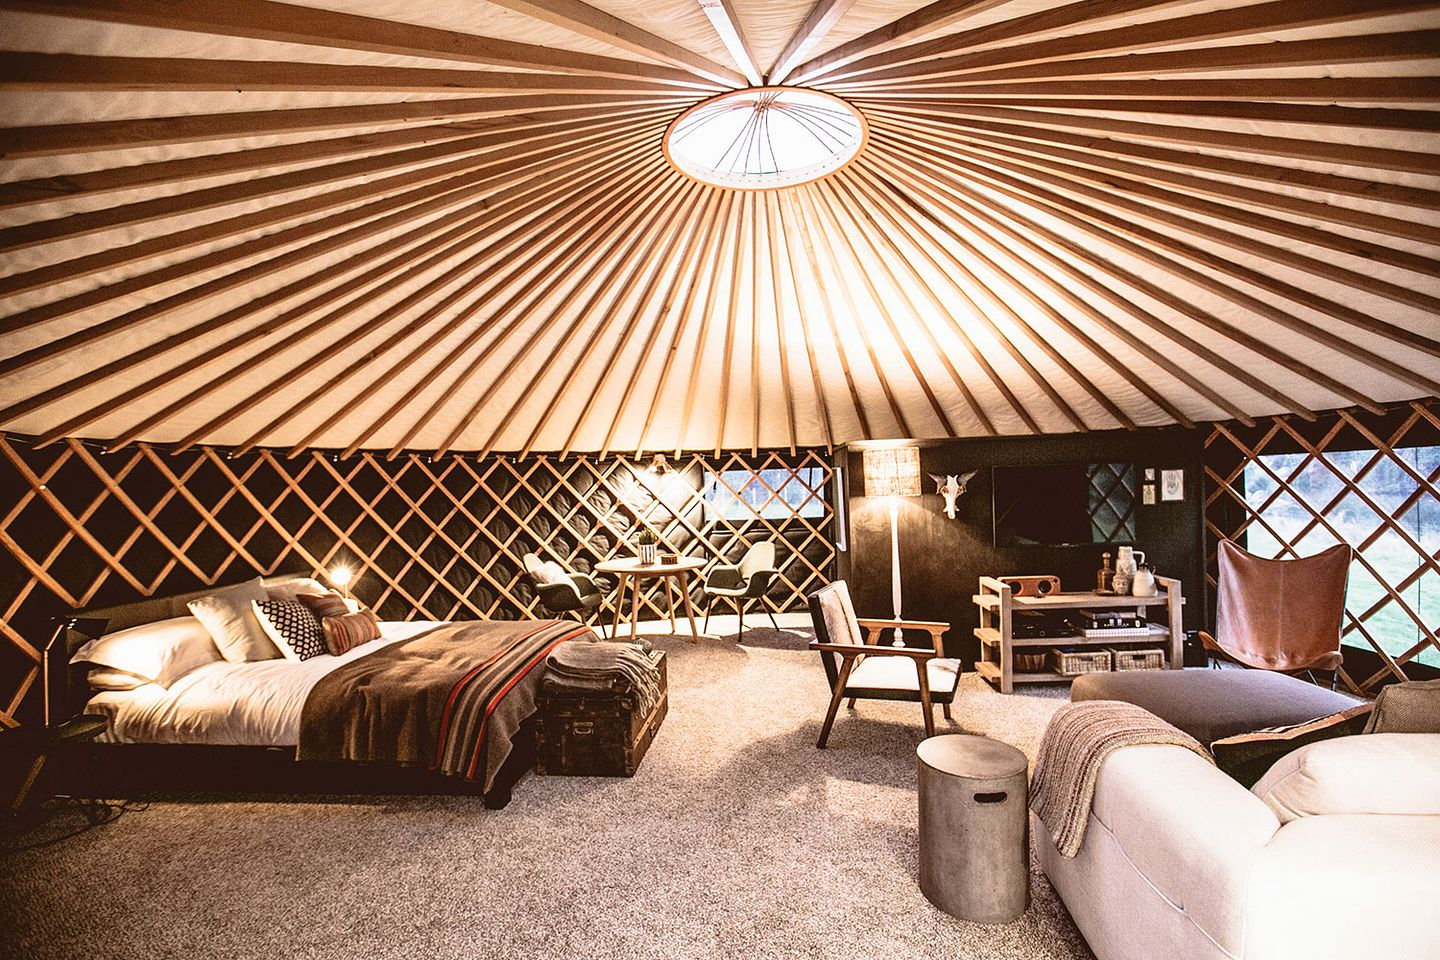 Yurt Rental In Raglan North Island The yurt is a cost effective alternative to conventional housing. luxurious yurt rental with outdoor tub in raglan north island new zealand